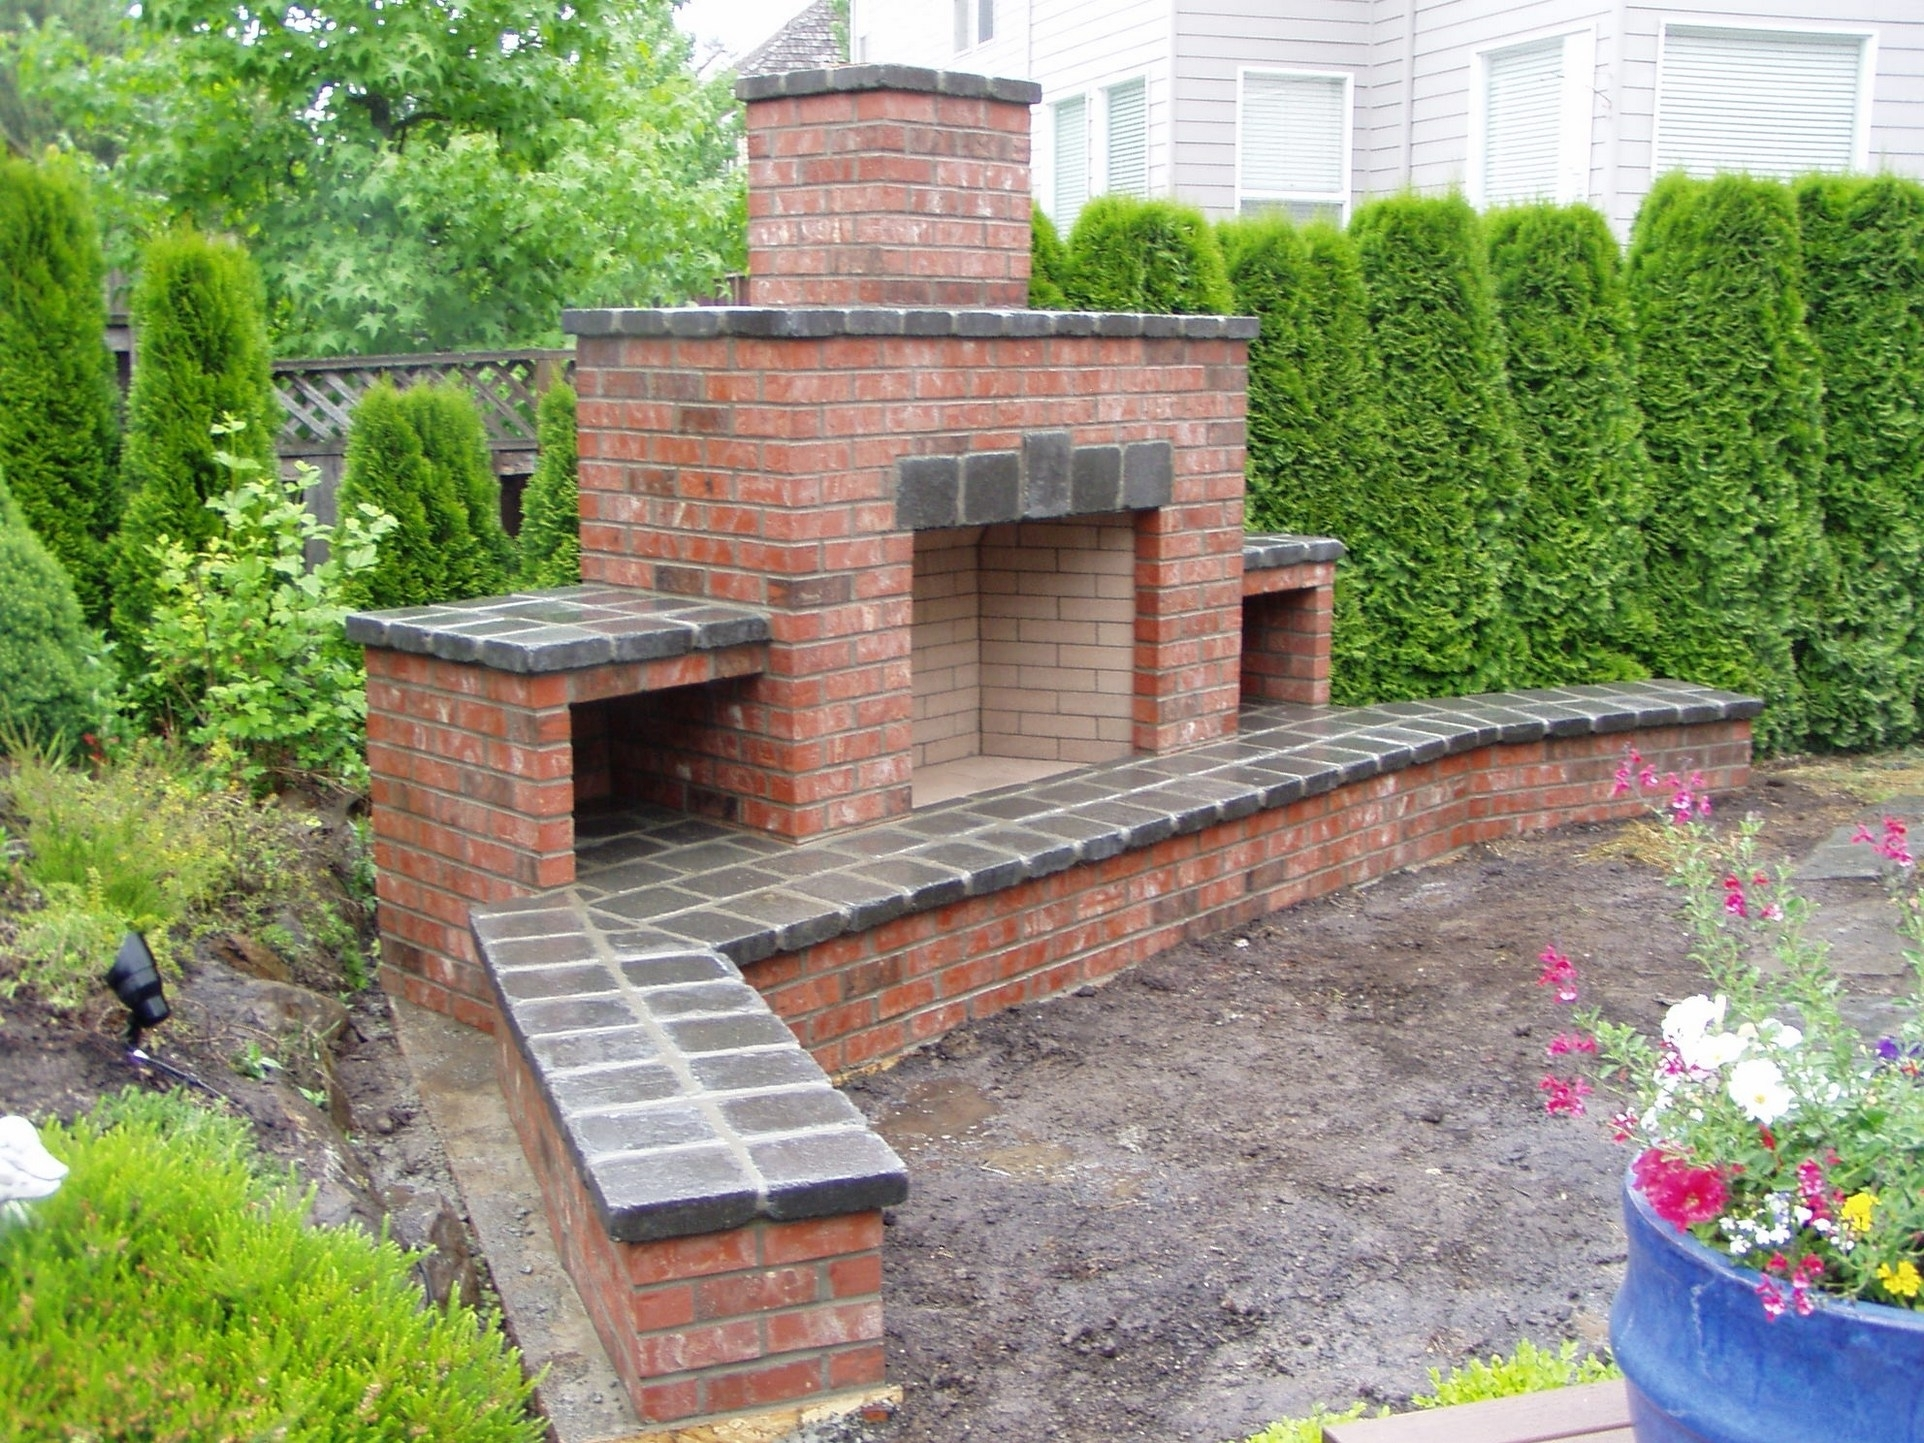 Image of: How To Build A Wood Burning Brick Outdoor Fireplace Hirerush Blog In Masonry Outdoor Fireplace The Right Options For Masonry Outdoor Fireplace